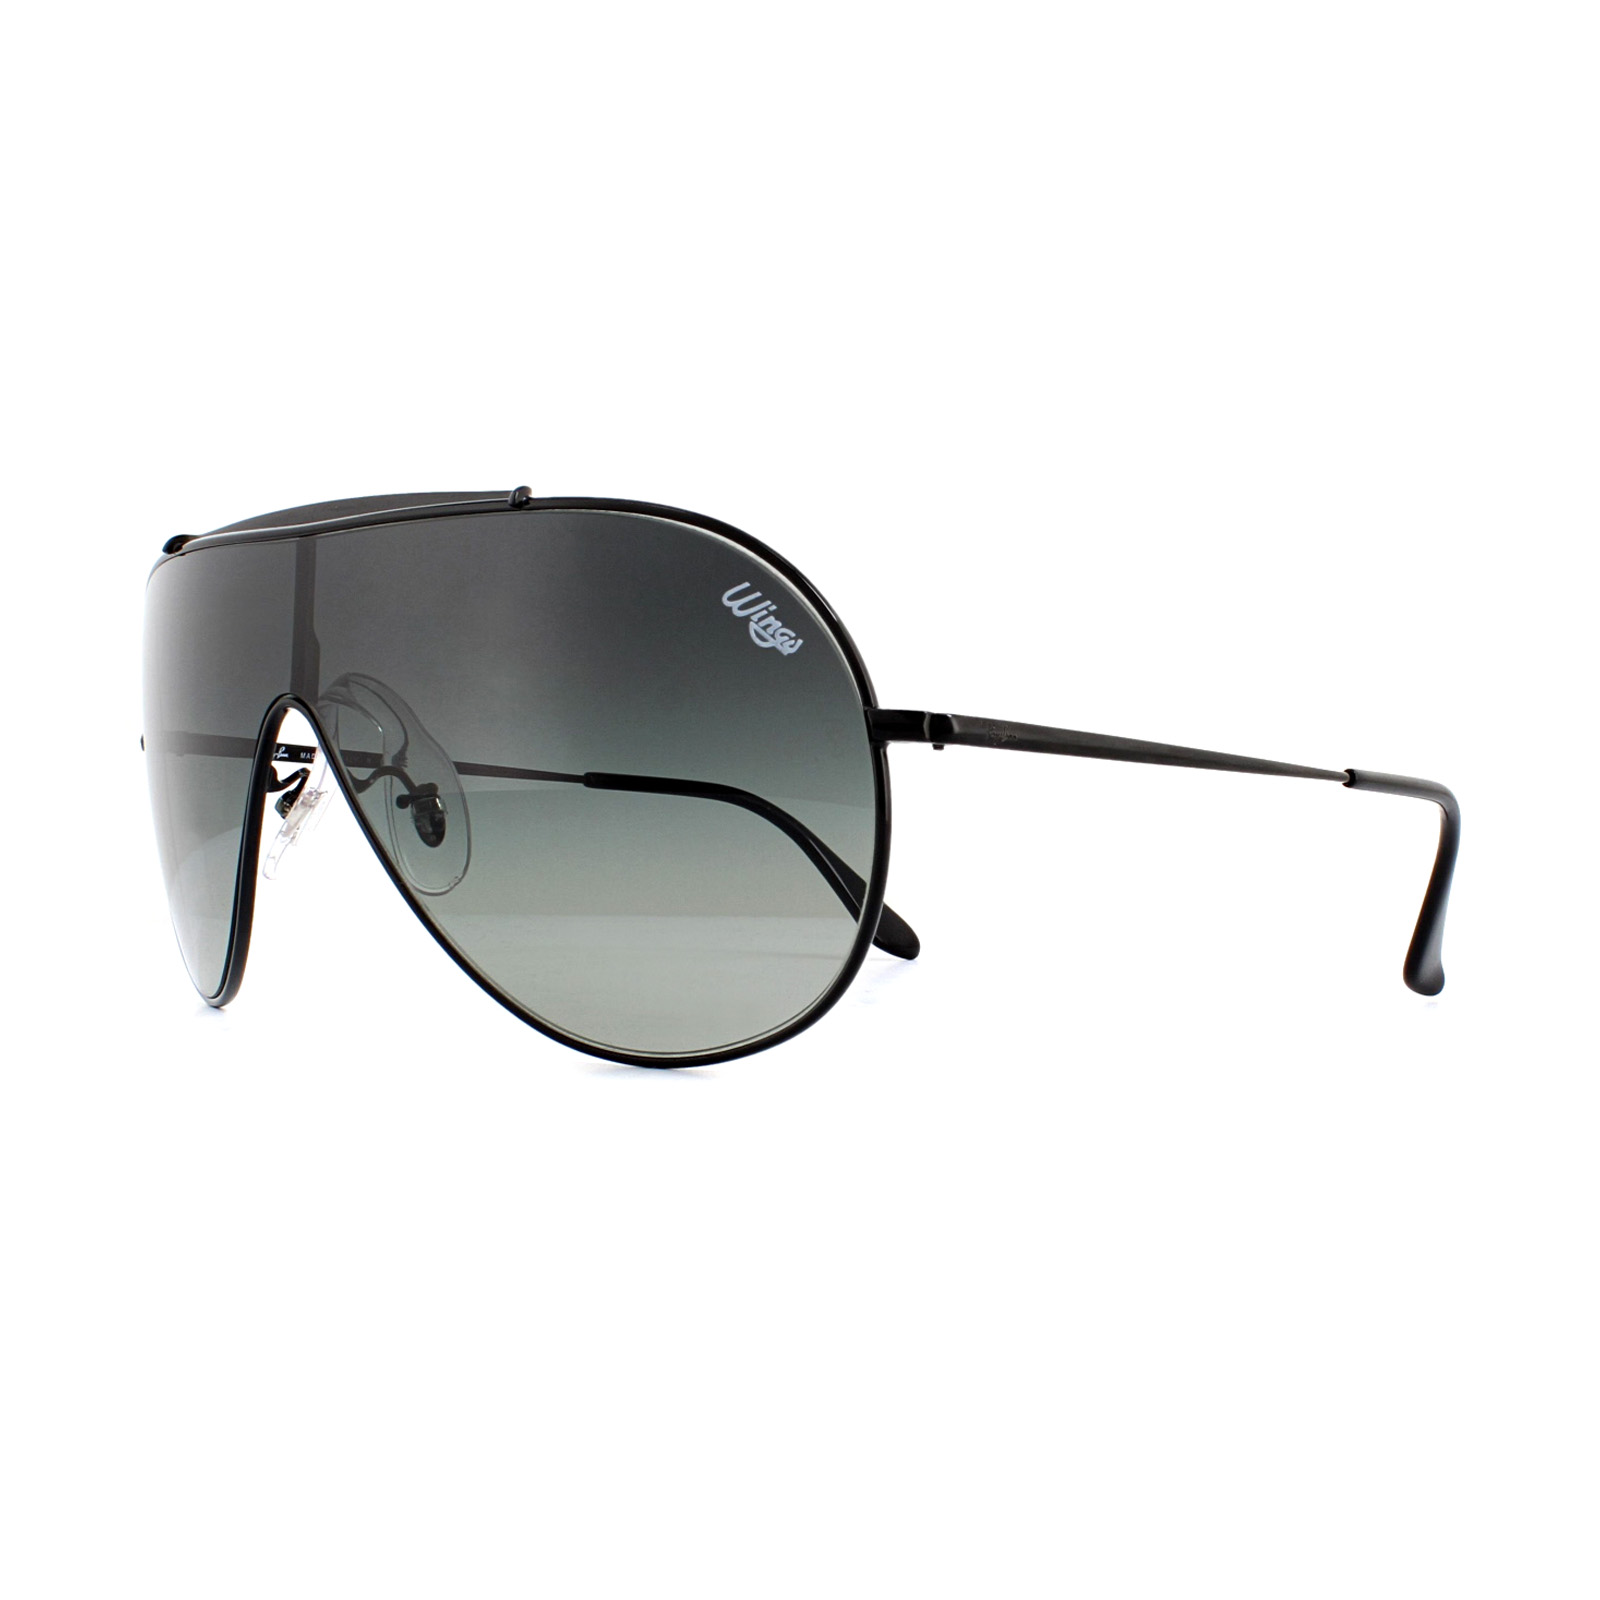 2d65bcd12952 Sentinel Ray-Ban Sunglasses Wings RB3597 002/11 Black Grey Gradient